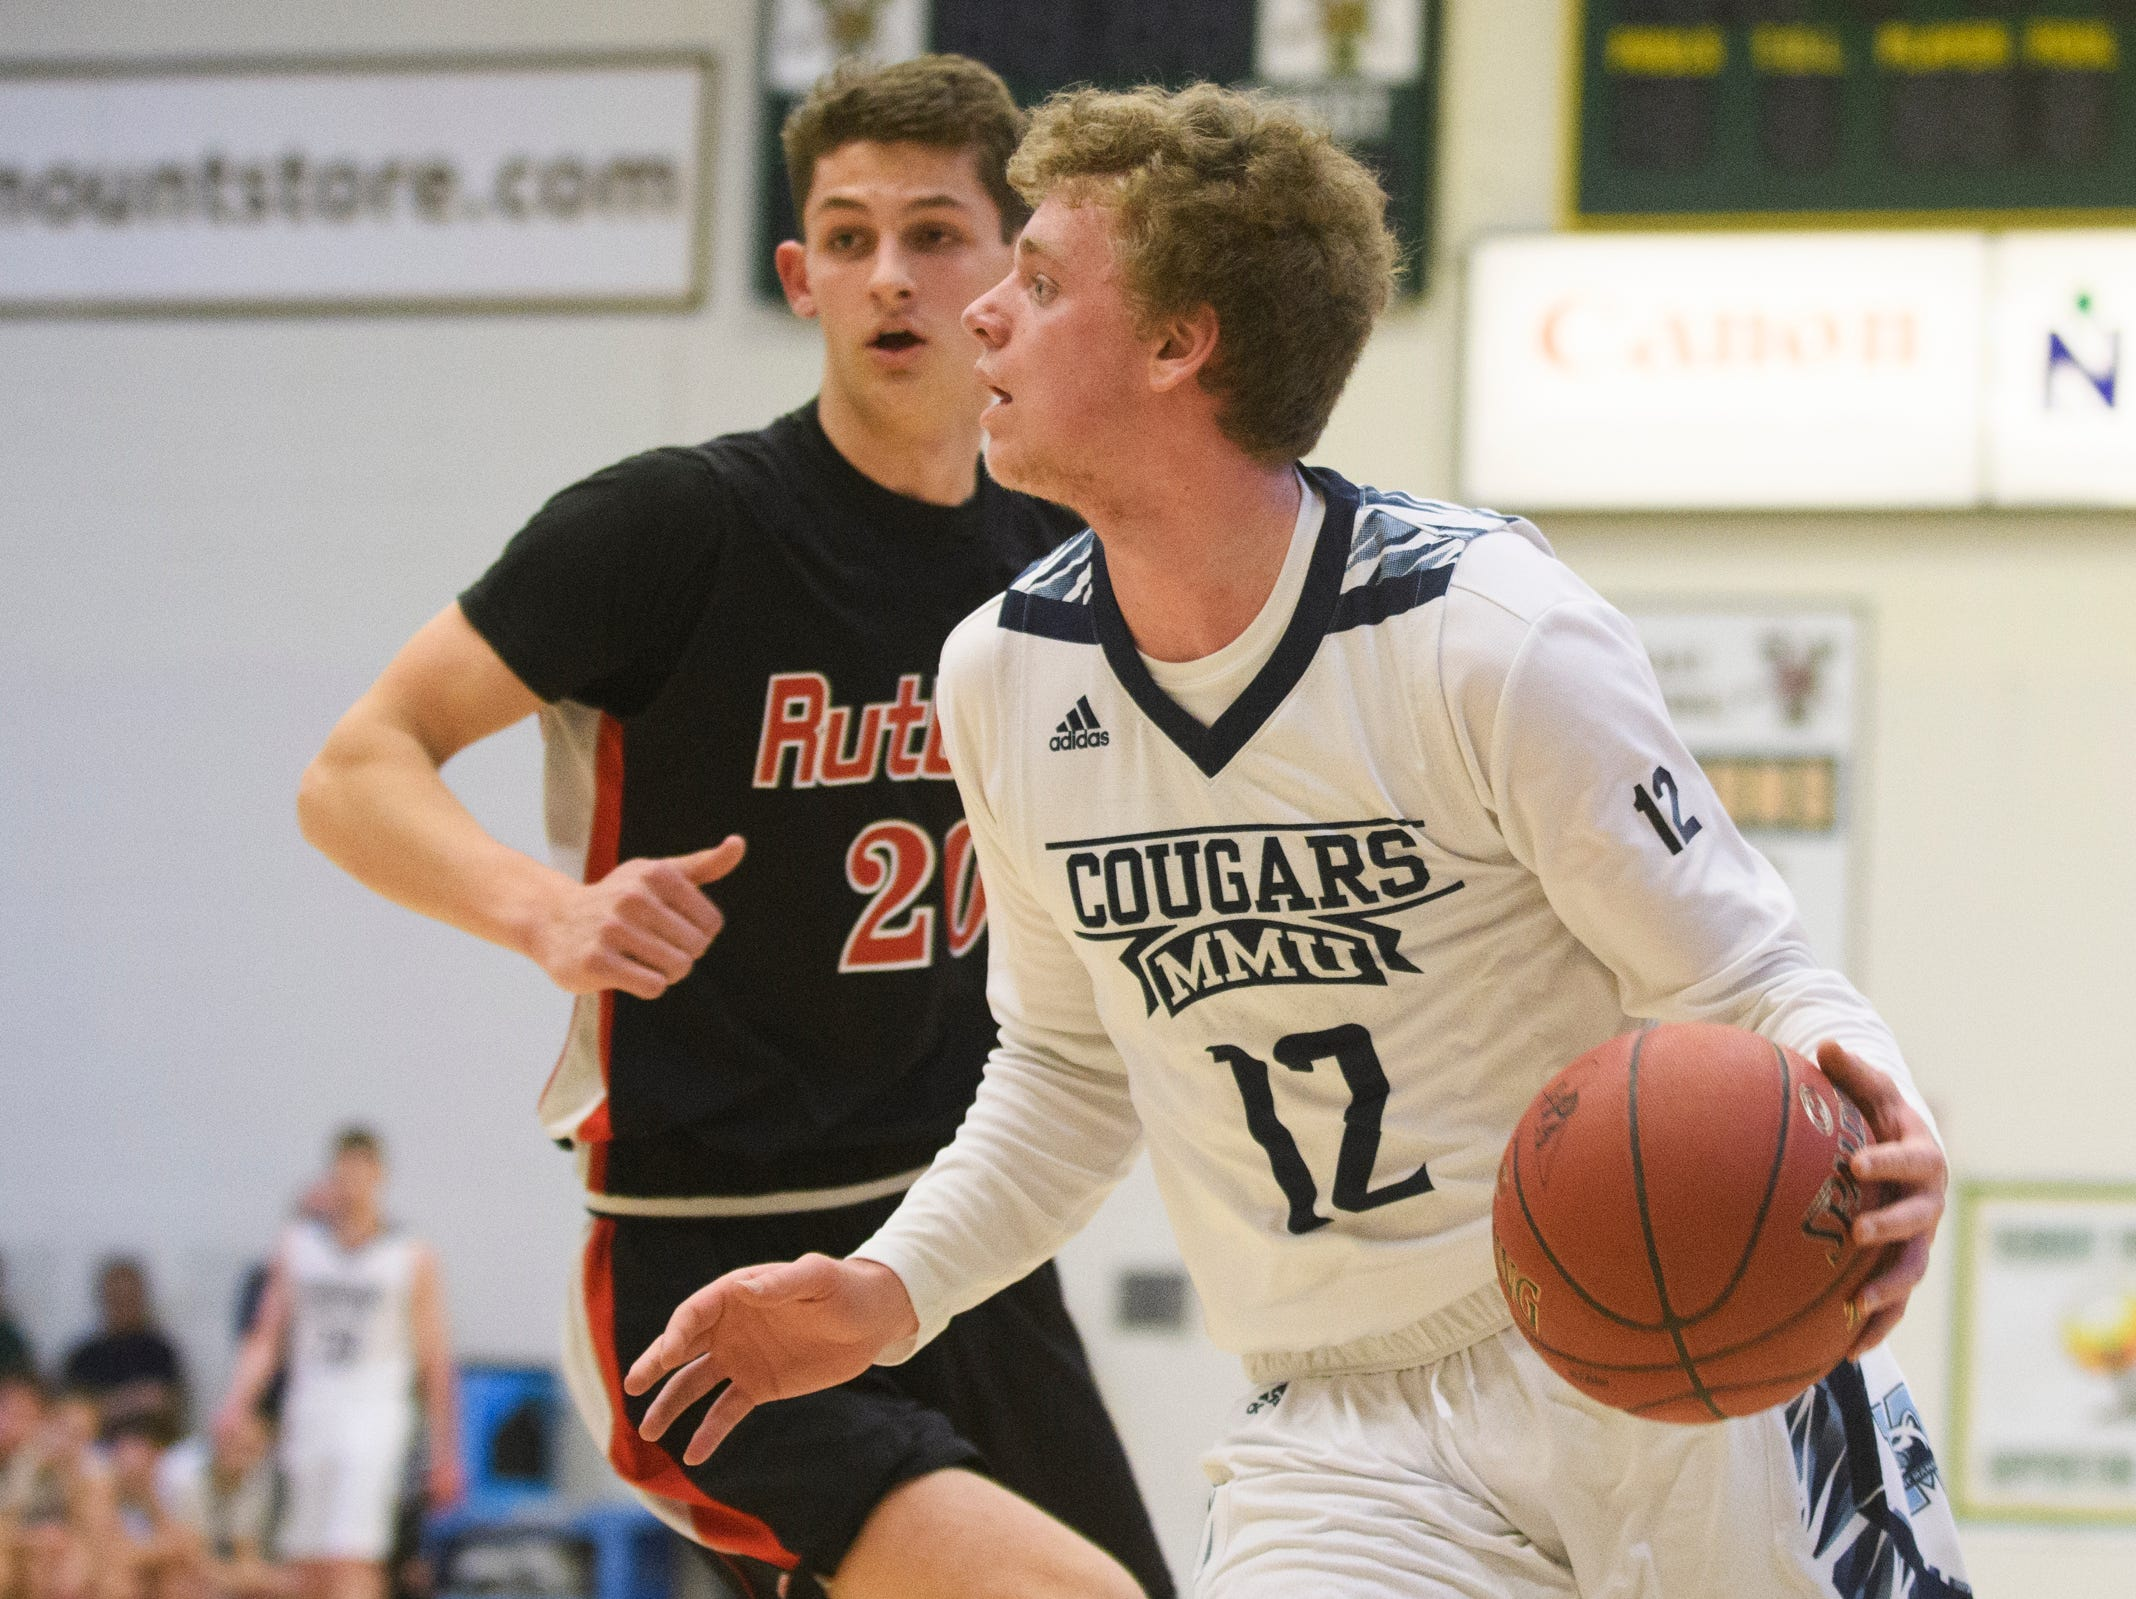 MMU's Asa Carlson (12) drives to the hoop during the boys DI semi final basketball game between the Rutland Raiders and the Mount Mansfield Cougars at Patrick Gym on Monday night March 11, 2019 in Burlington, Vermont.